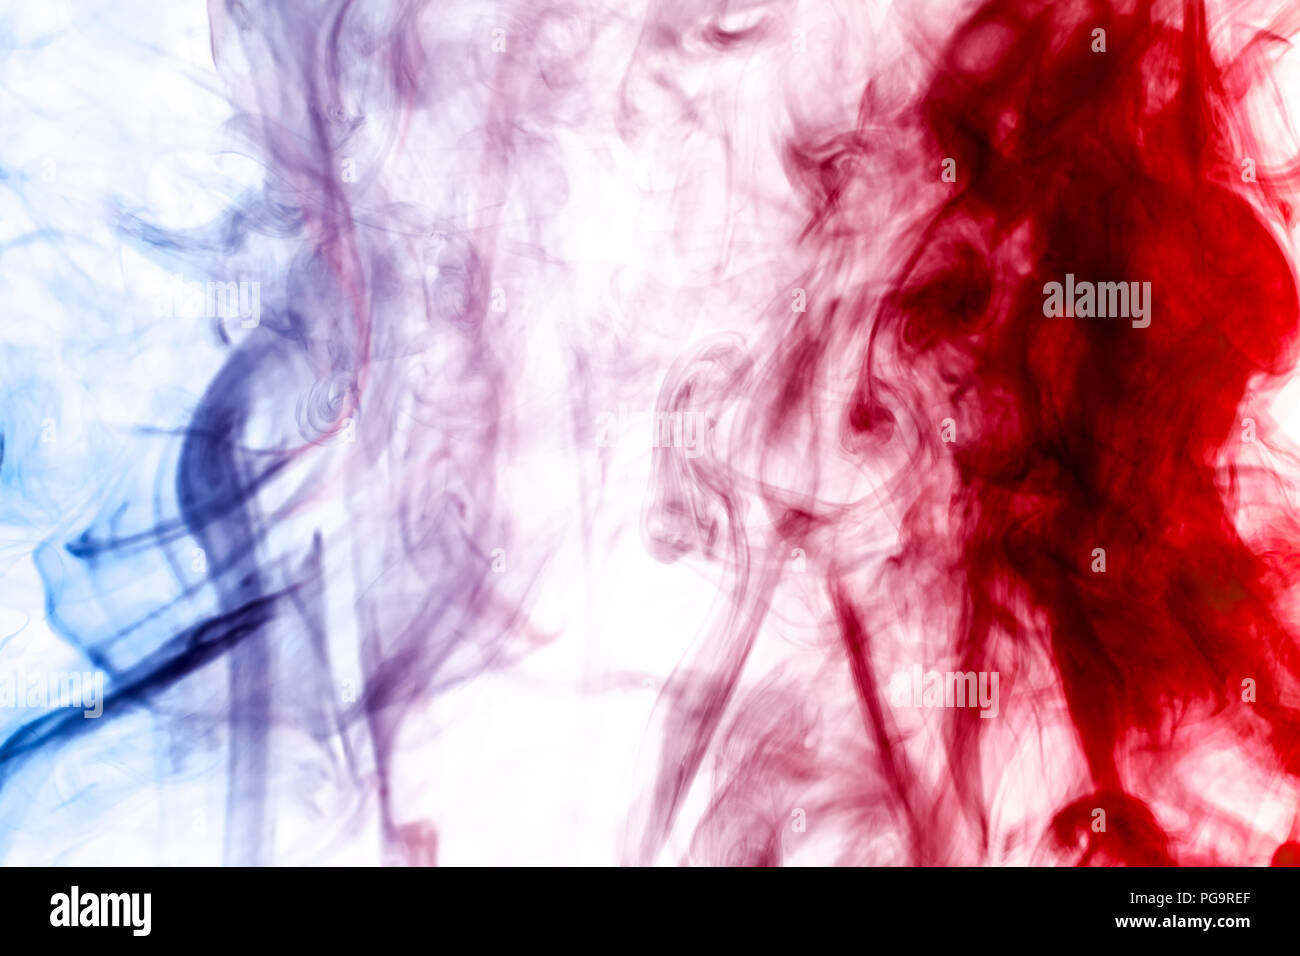 thick red blue smoke on a white isolated background background from the smoke of vape stock photo alamy https www alamy com thick redblue smoke on a white isolated background background from the smoke of vape image216574919 html